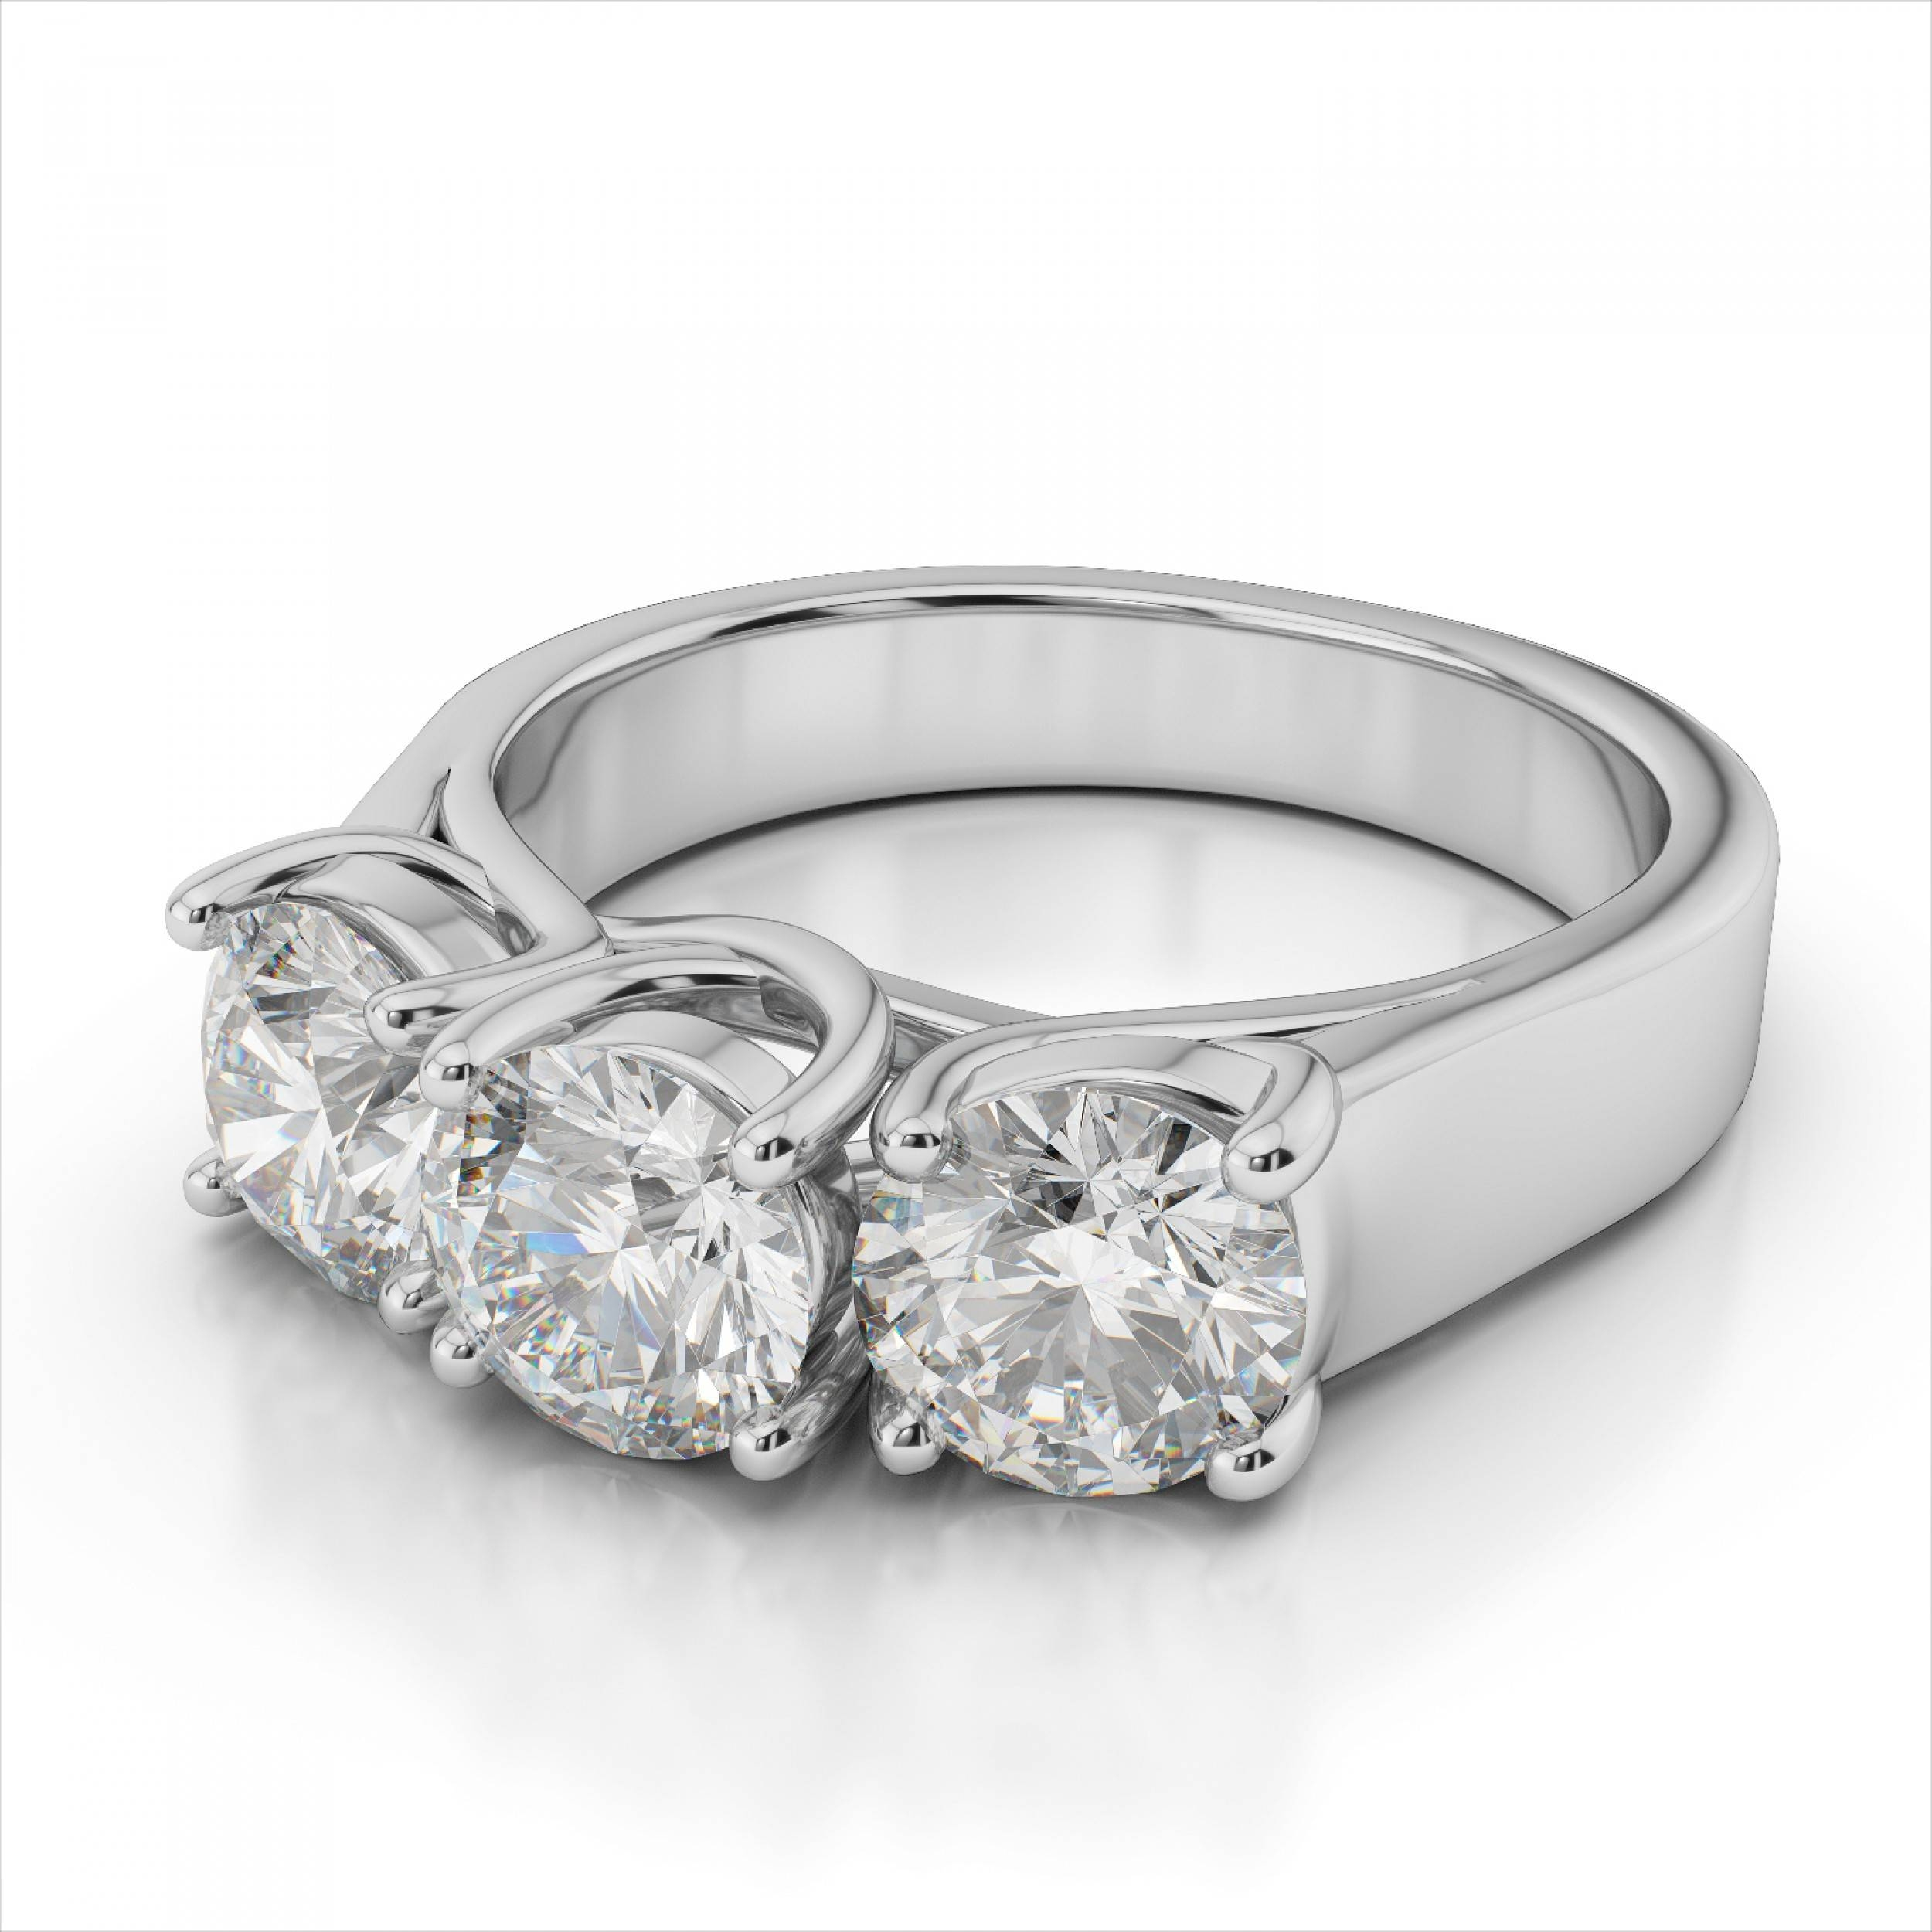 Wedding Rings : 3 Stone Engagement Rings With Side Stones 3 Stone With 3 Stone Platinum Engagement Rings (View 5 of 15)